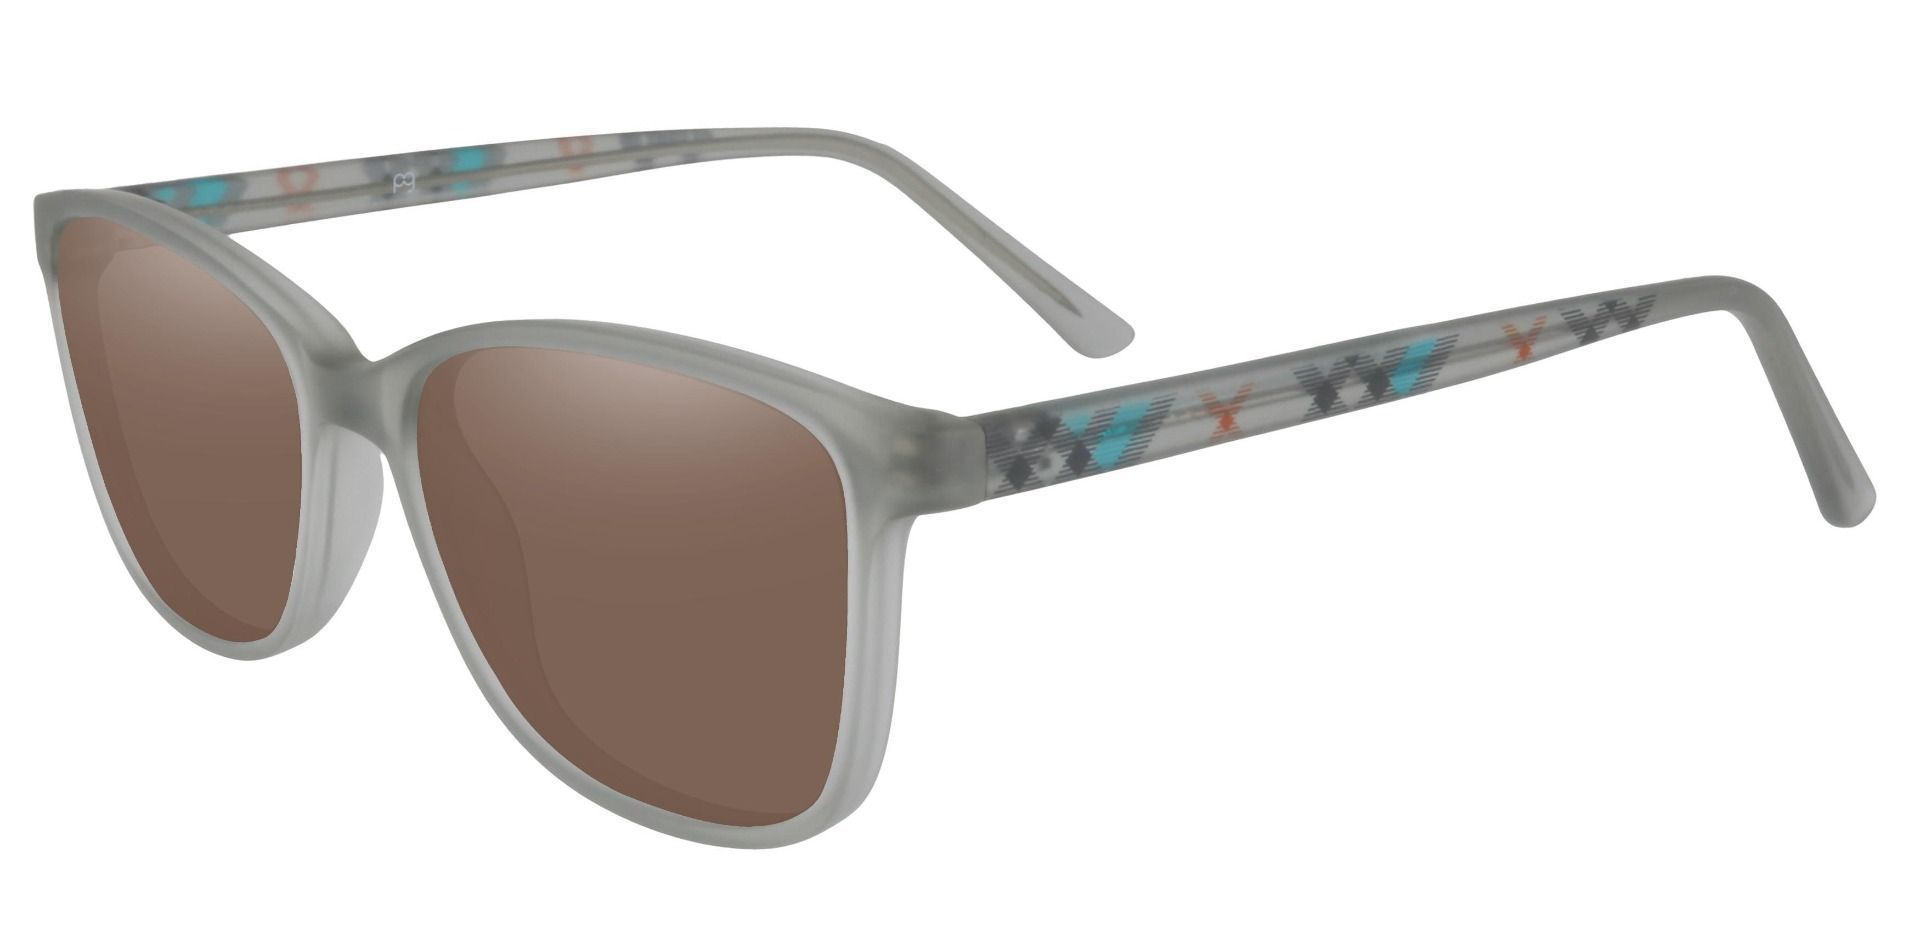 Argyle Rectangle Prescription Sunglasses - Gray Frame With Brown Lenses